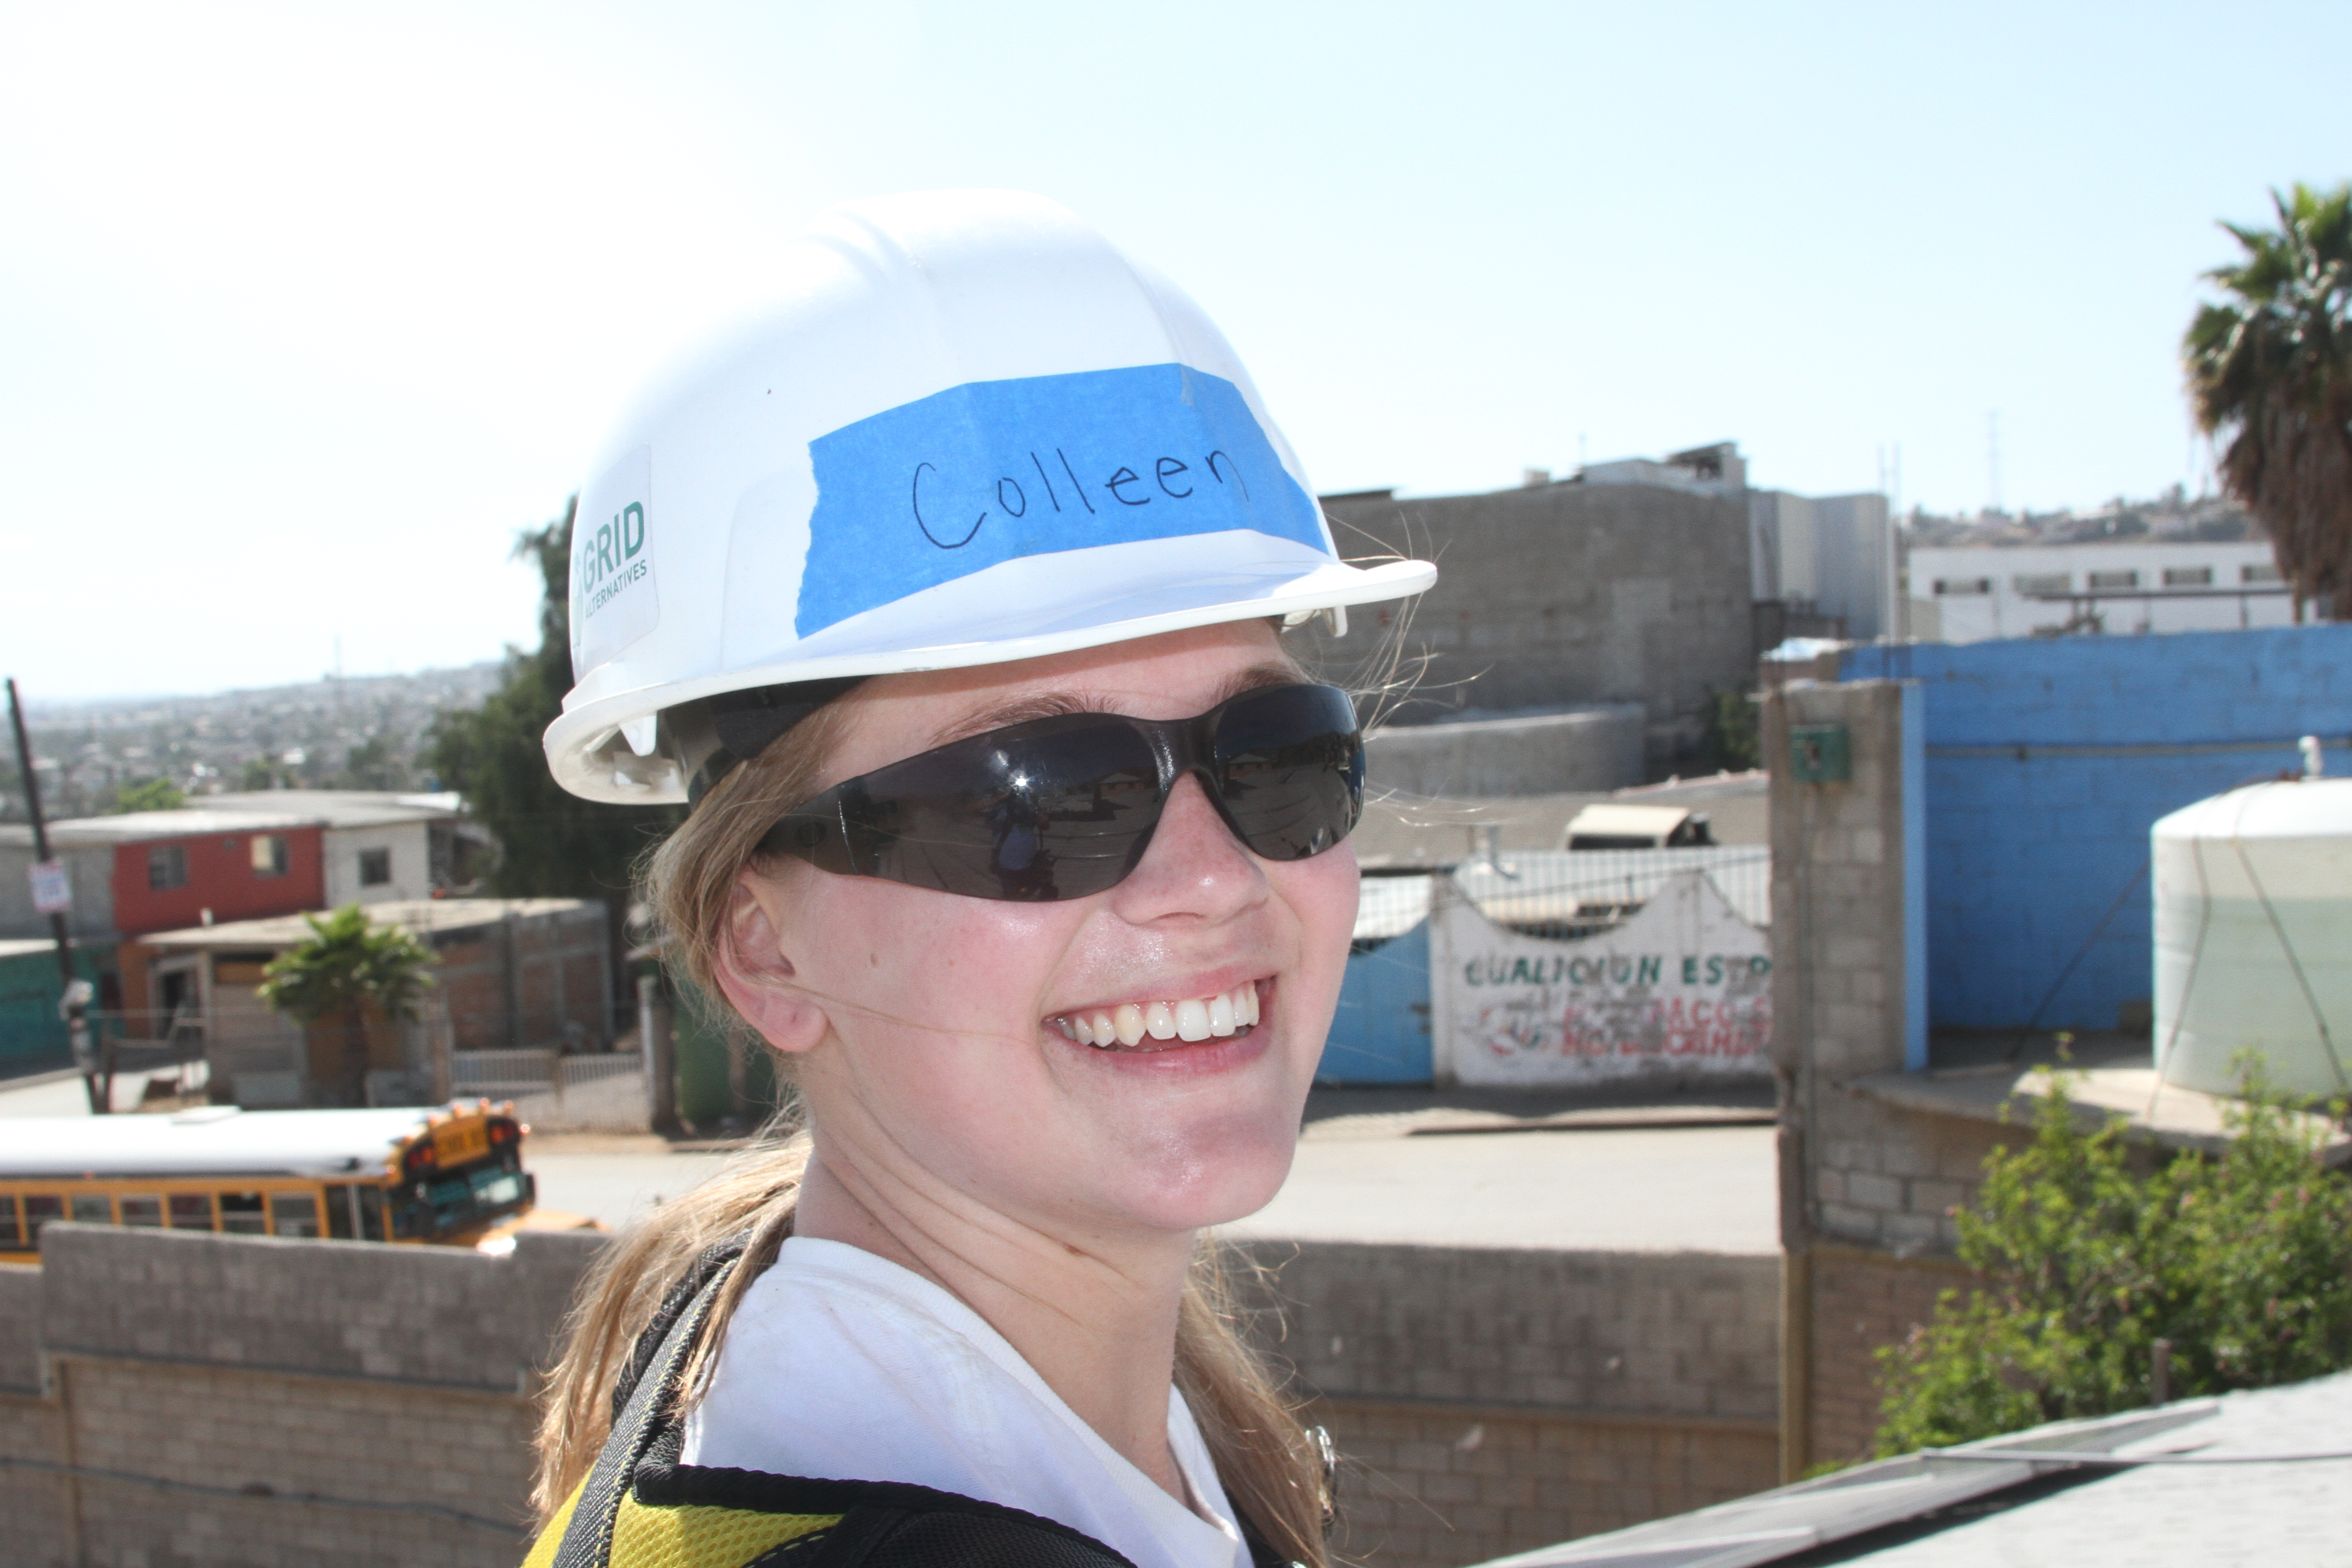 Colleen smiles with her hardhat during the installation